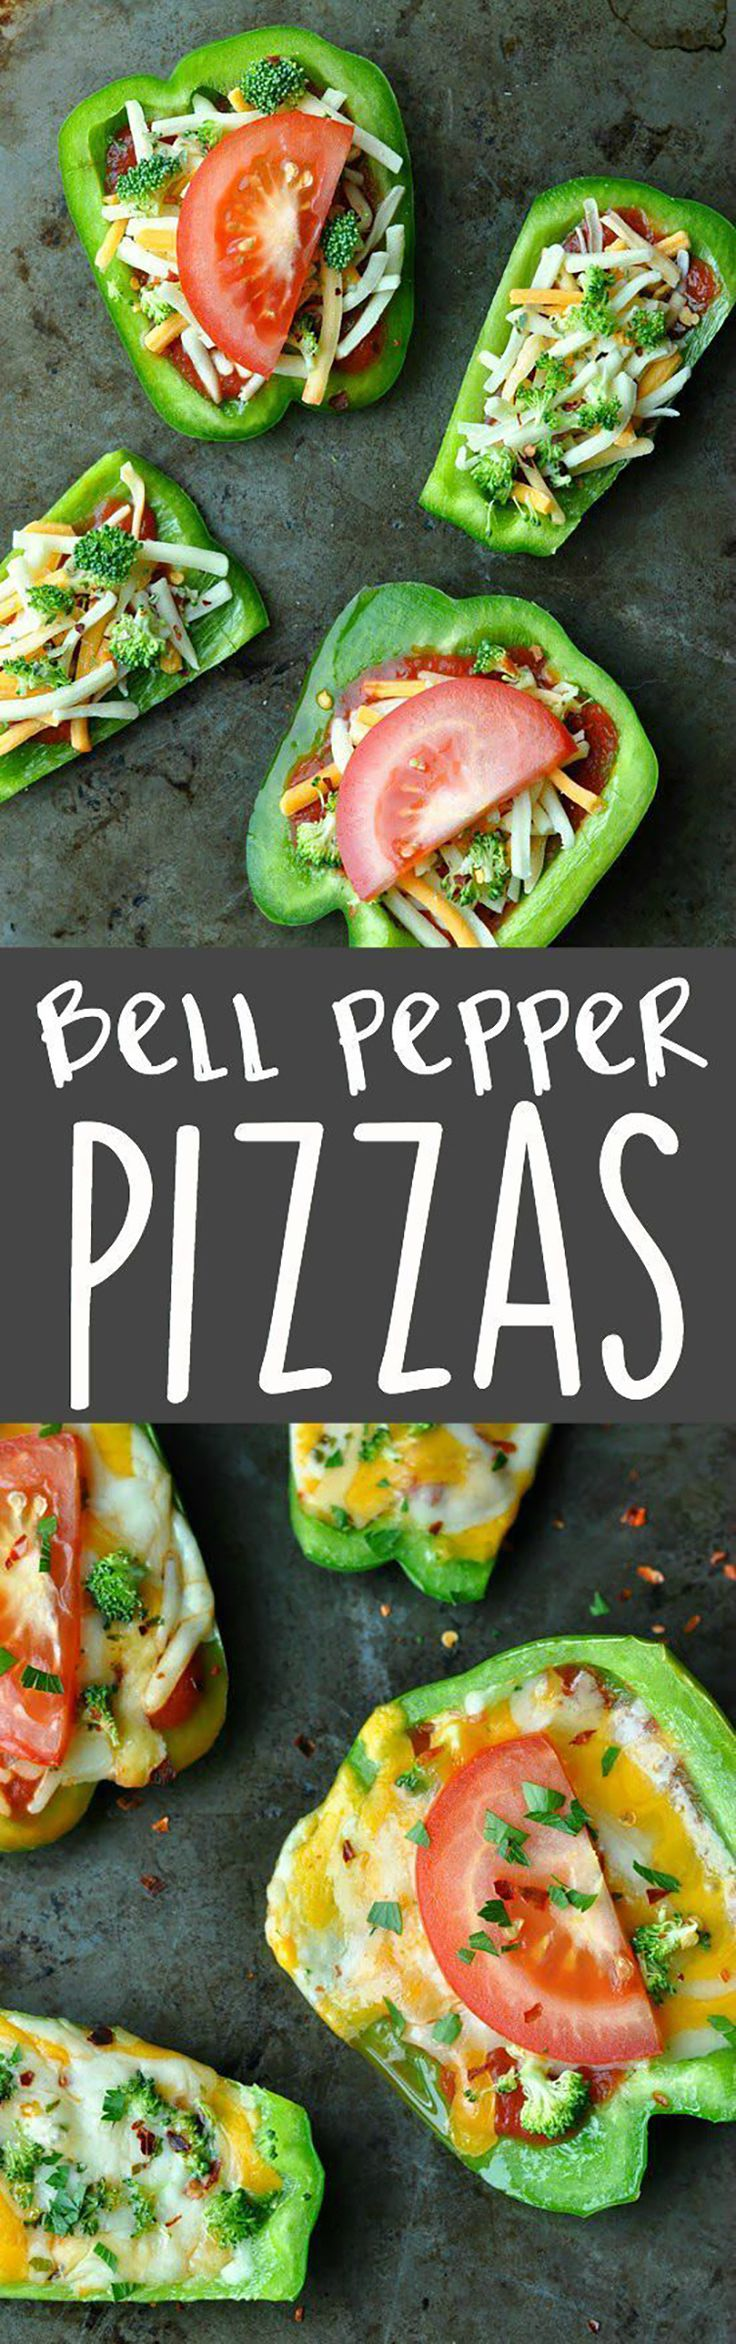 5. Bell Pepper Pizzas #healthy #portable #lunch #recipes